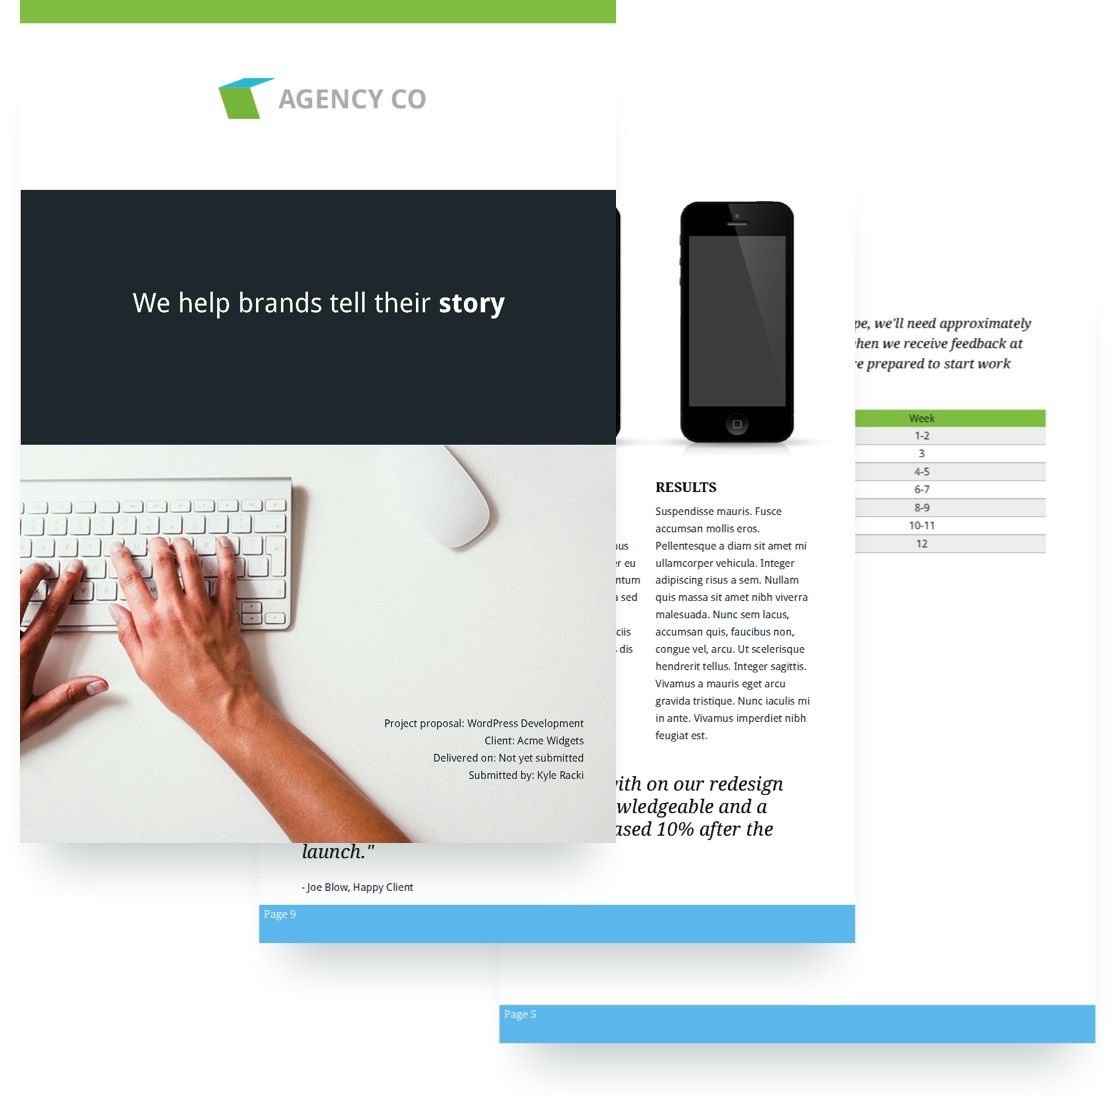 009 Magnificent Website Development Proposal Template Image  Web Free Document PortalFull